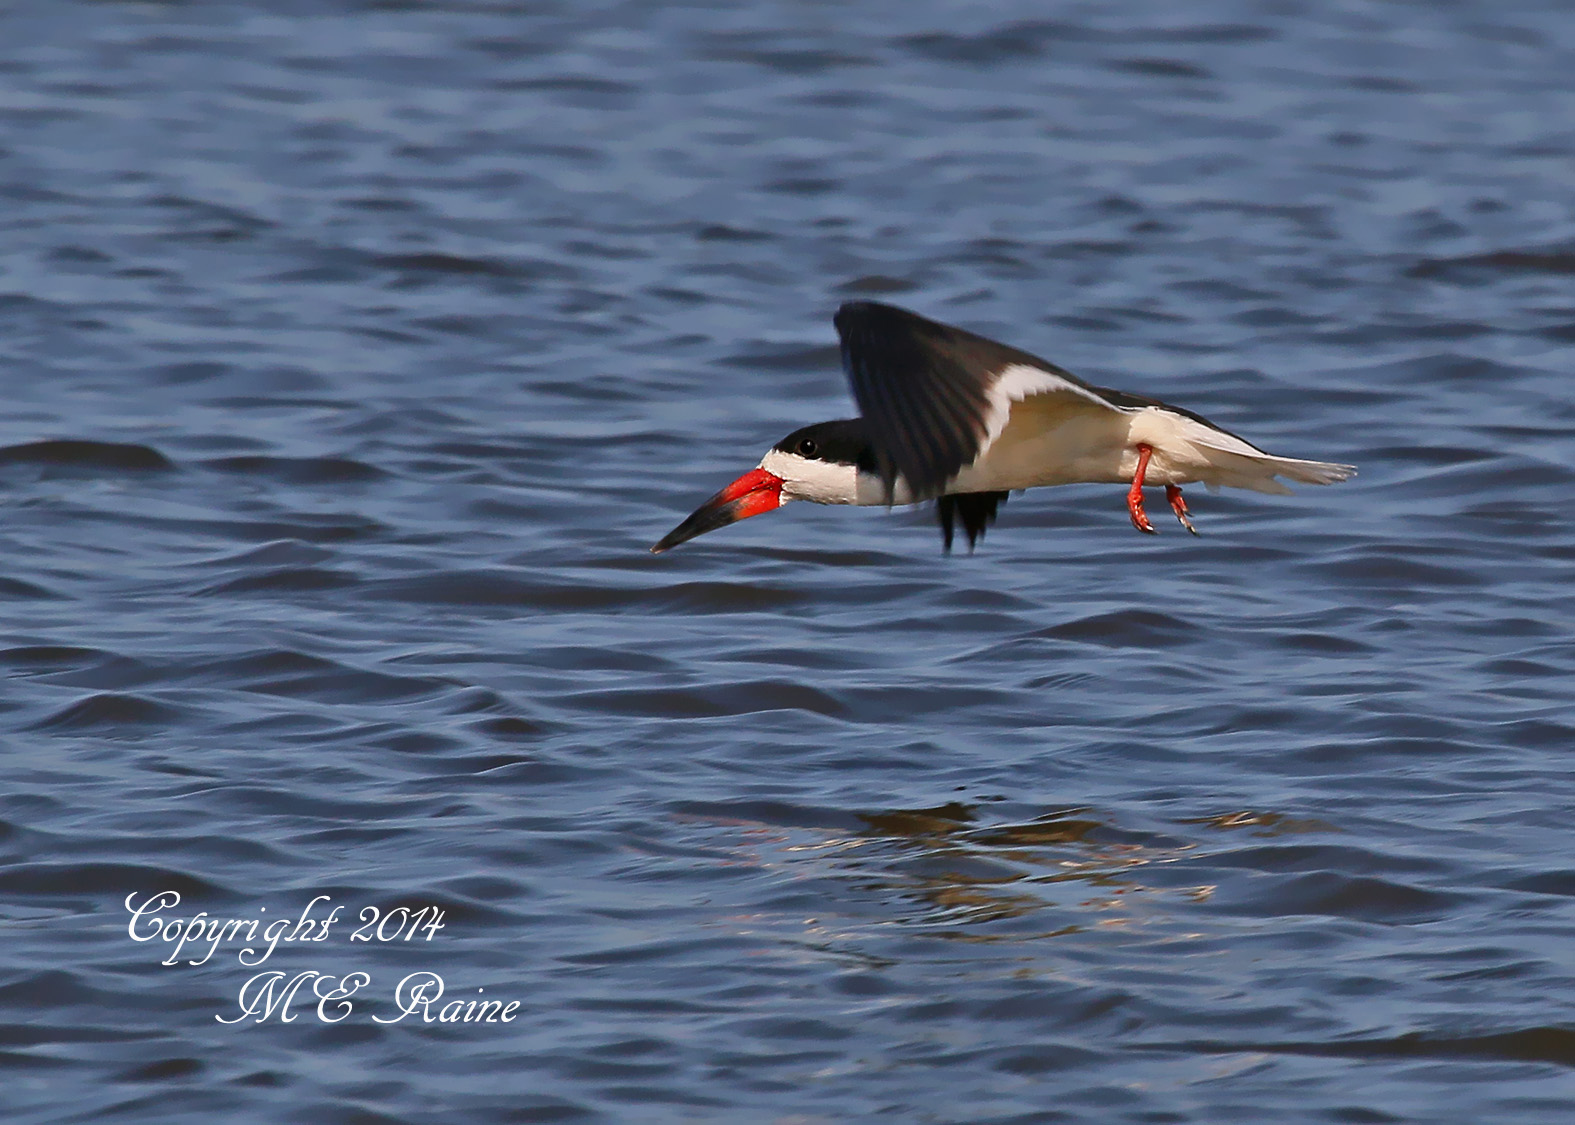 052014 FTD B Black Skimmer 001df River Barge Park in Carlstadt Mdwlnds NJ 052014 OK FLICKR